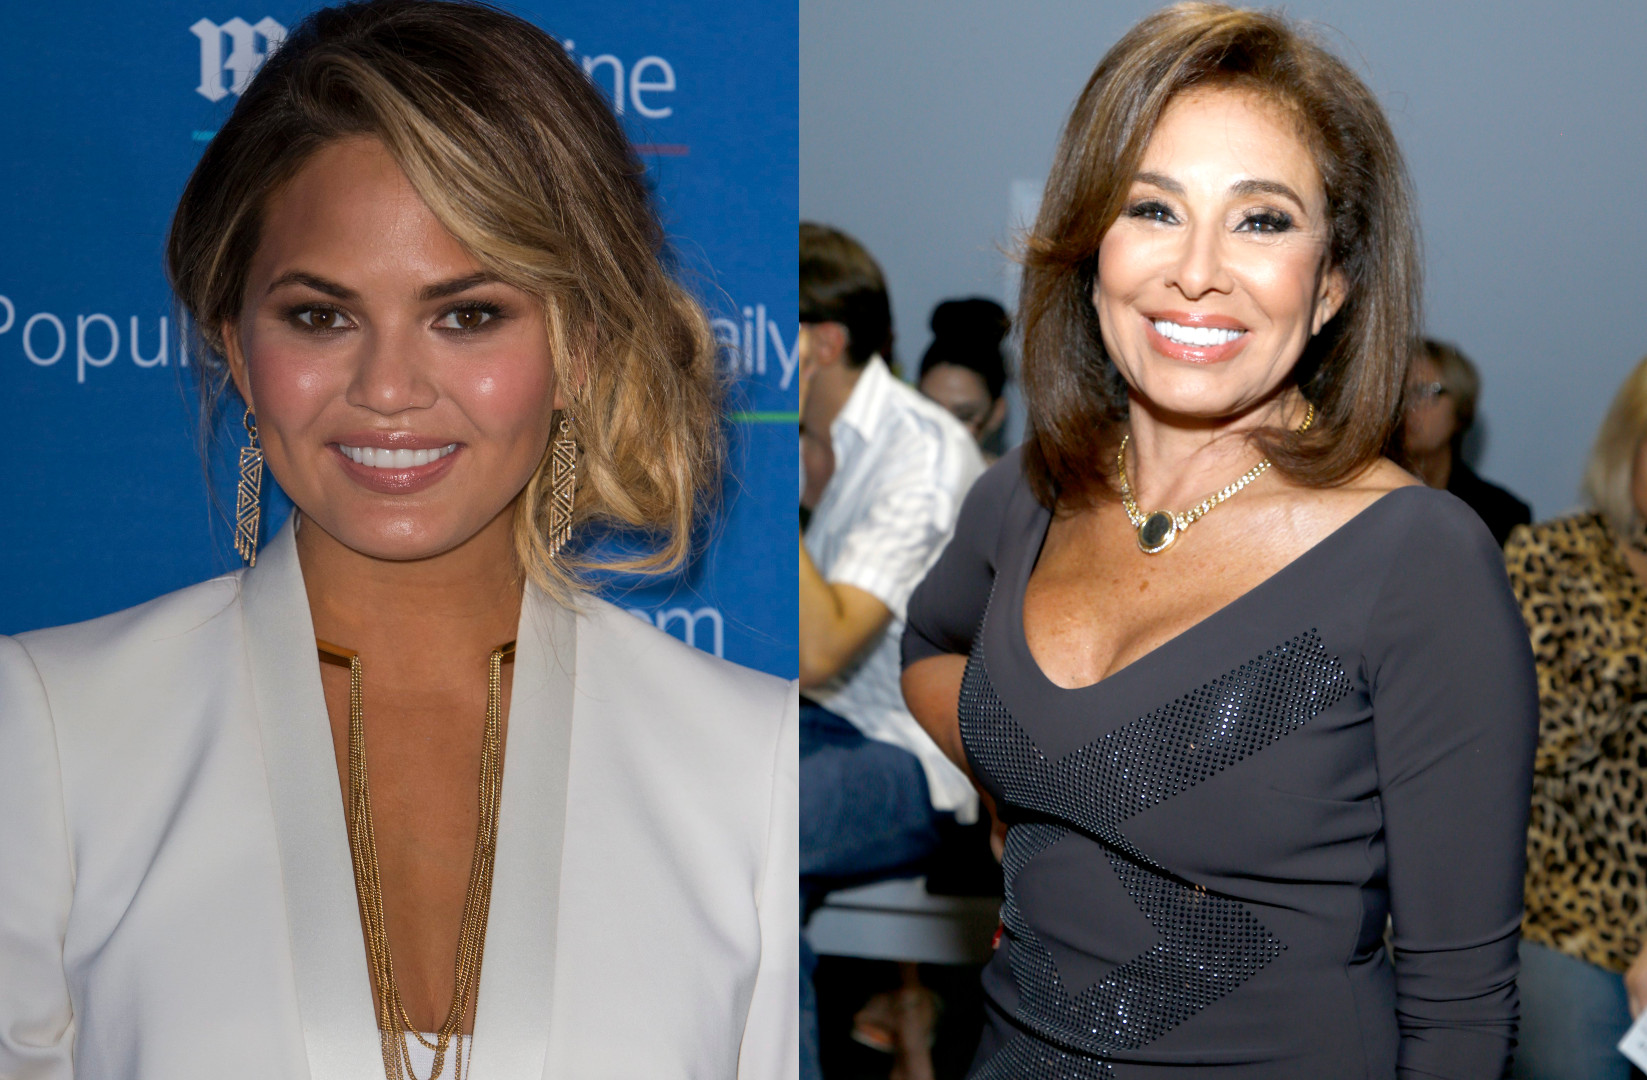 Chrissy Teigen Calls Out Jeanine Pirro After Noticing A Photo Of Her Boobs On Pirro's Phone